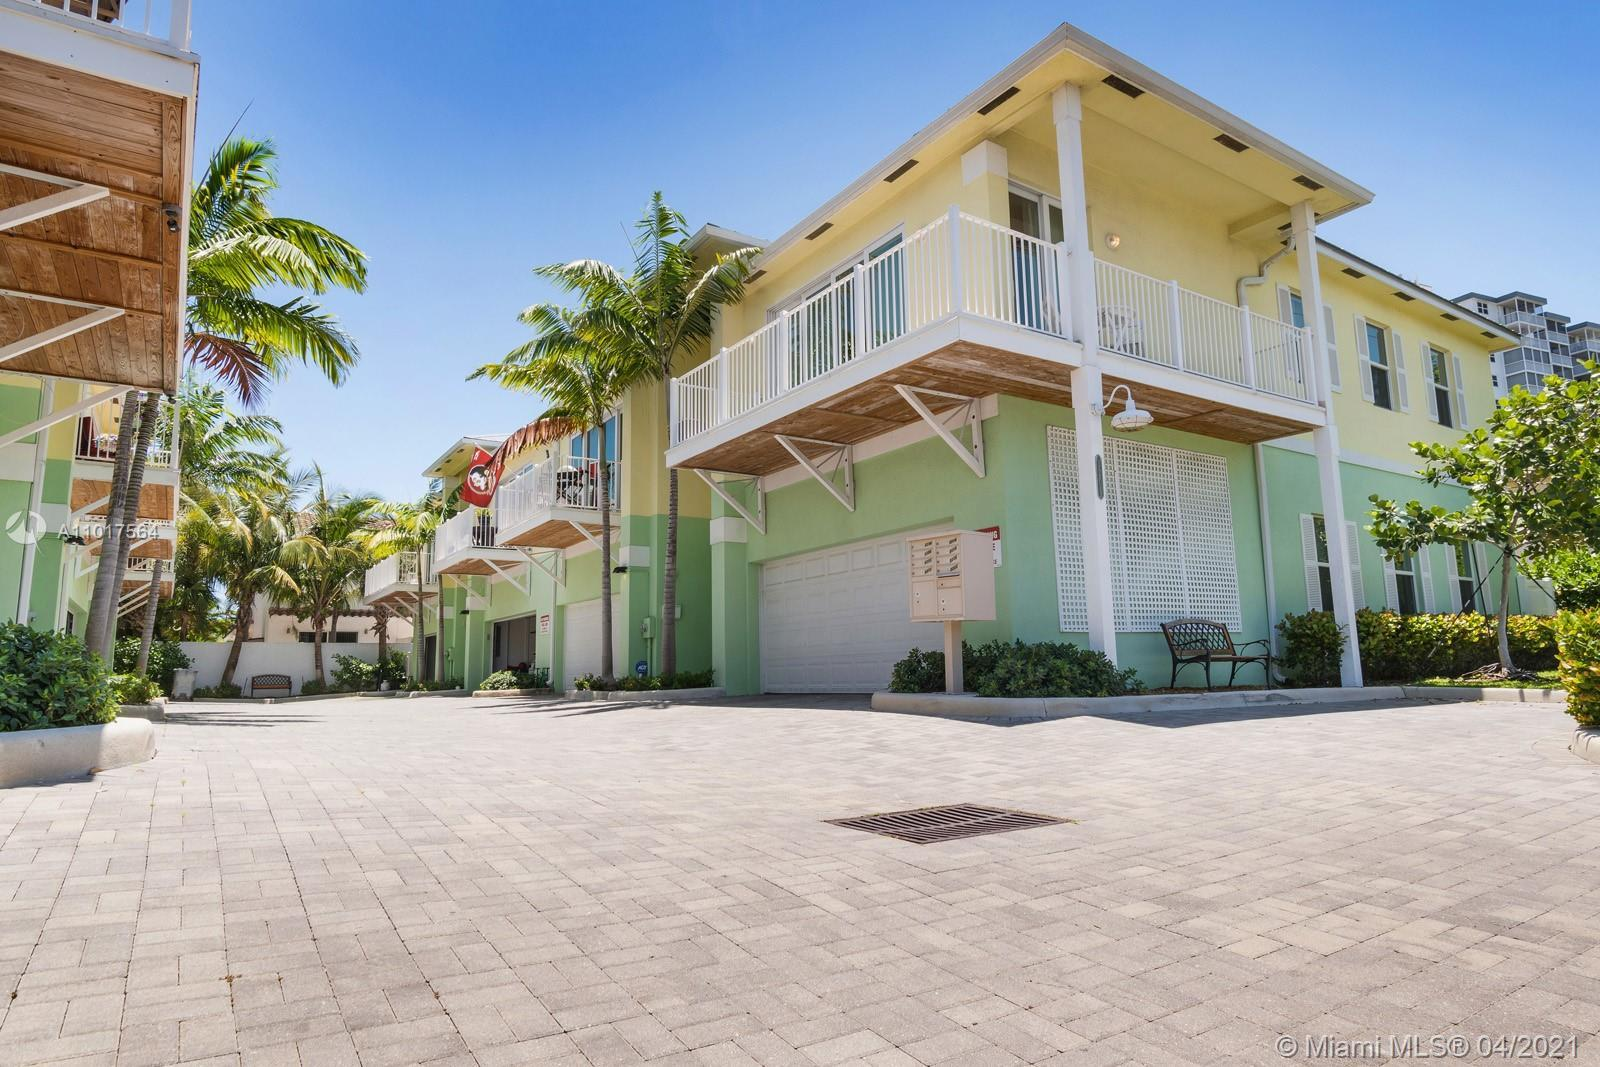 This 2014 corner unit beach townhouse has it all! It's nestled right between the Atlantic ocean and